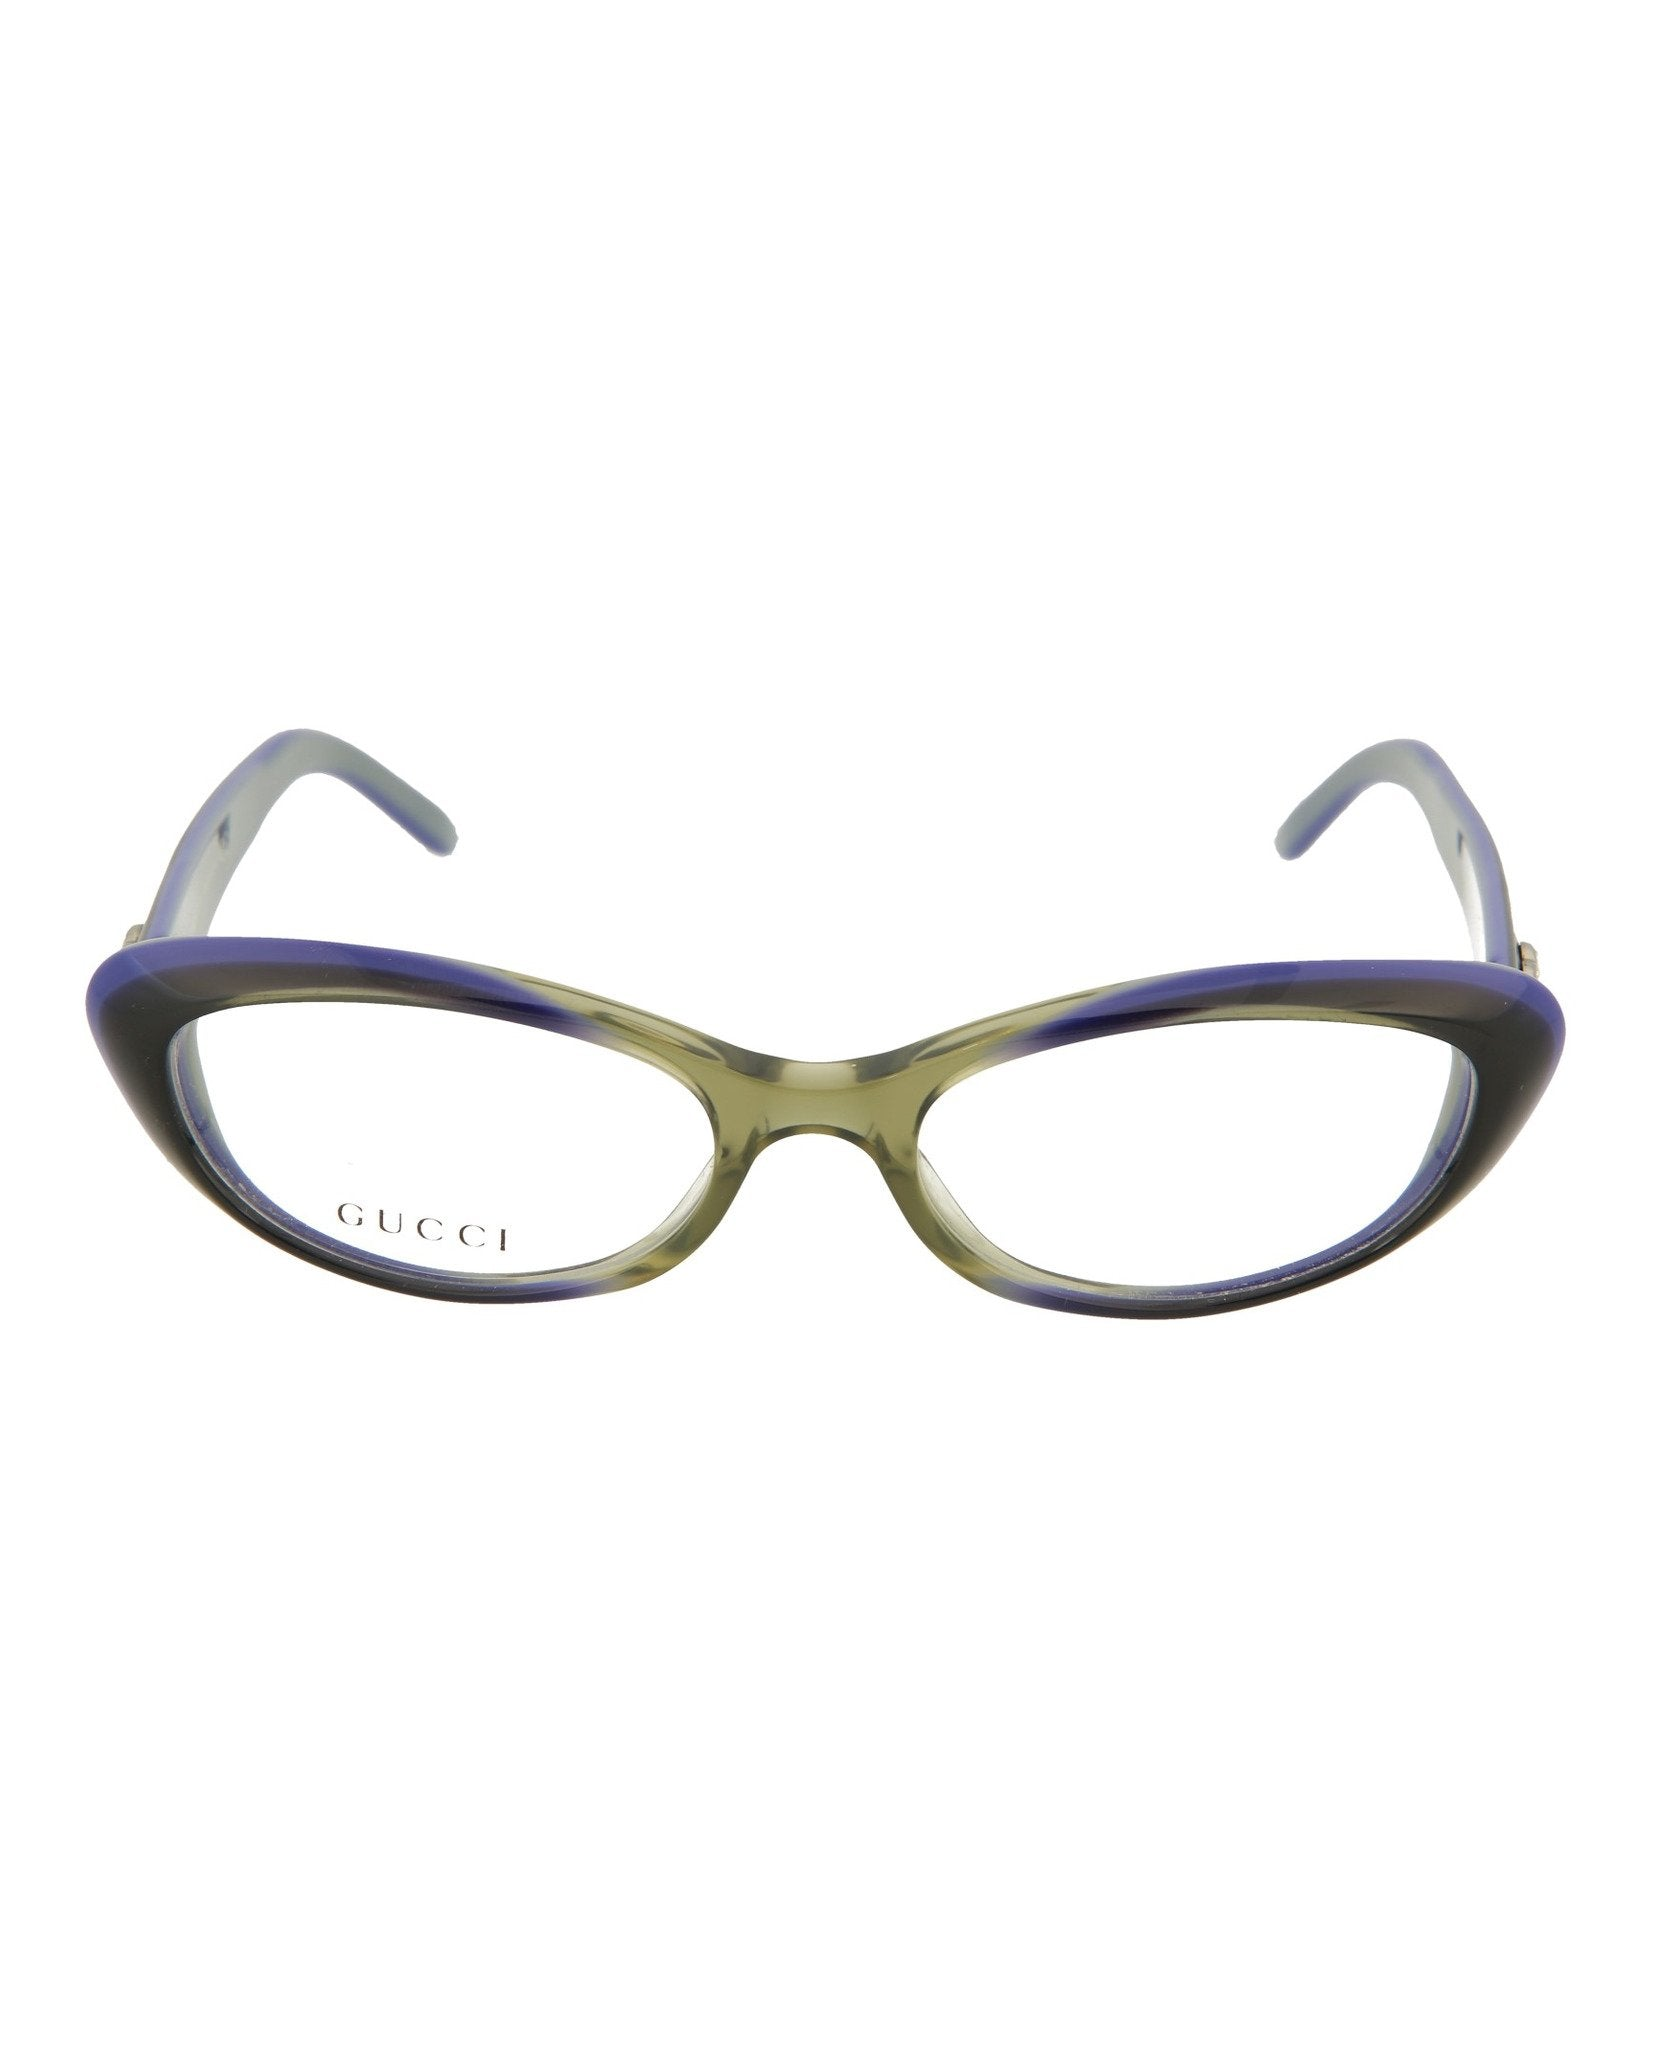 79822082d7 Gucci Round Oval Optical Frames – MadaLuxe Vault